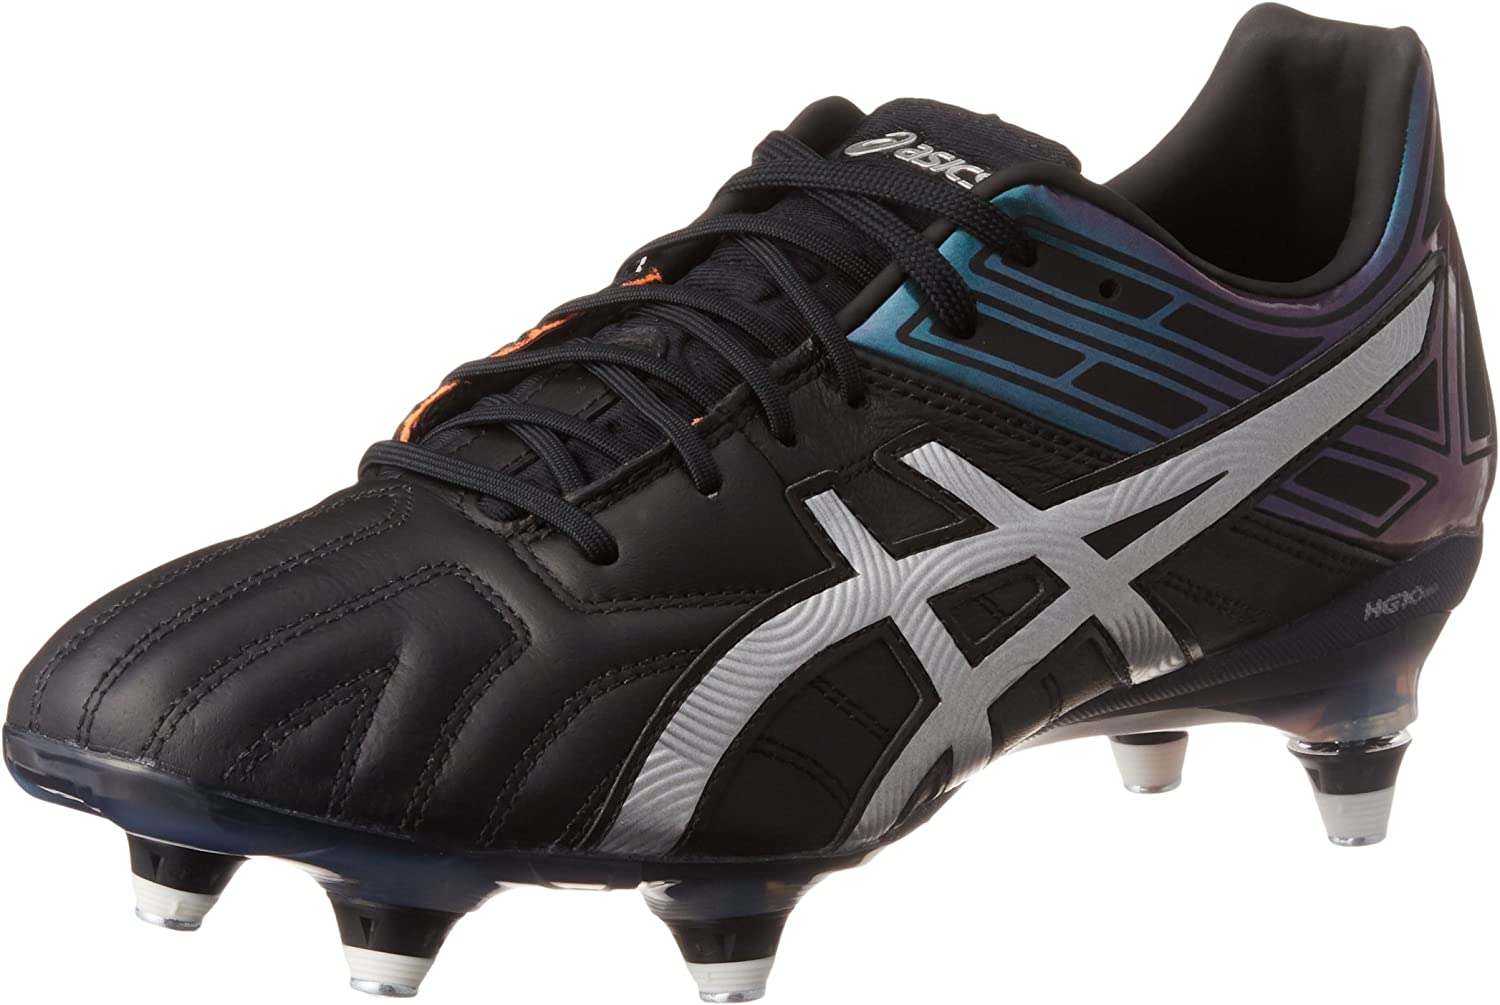 GelLethal Tigreor 10 ST Rugby Boots  Black Silver